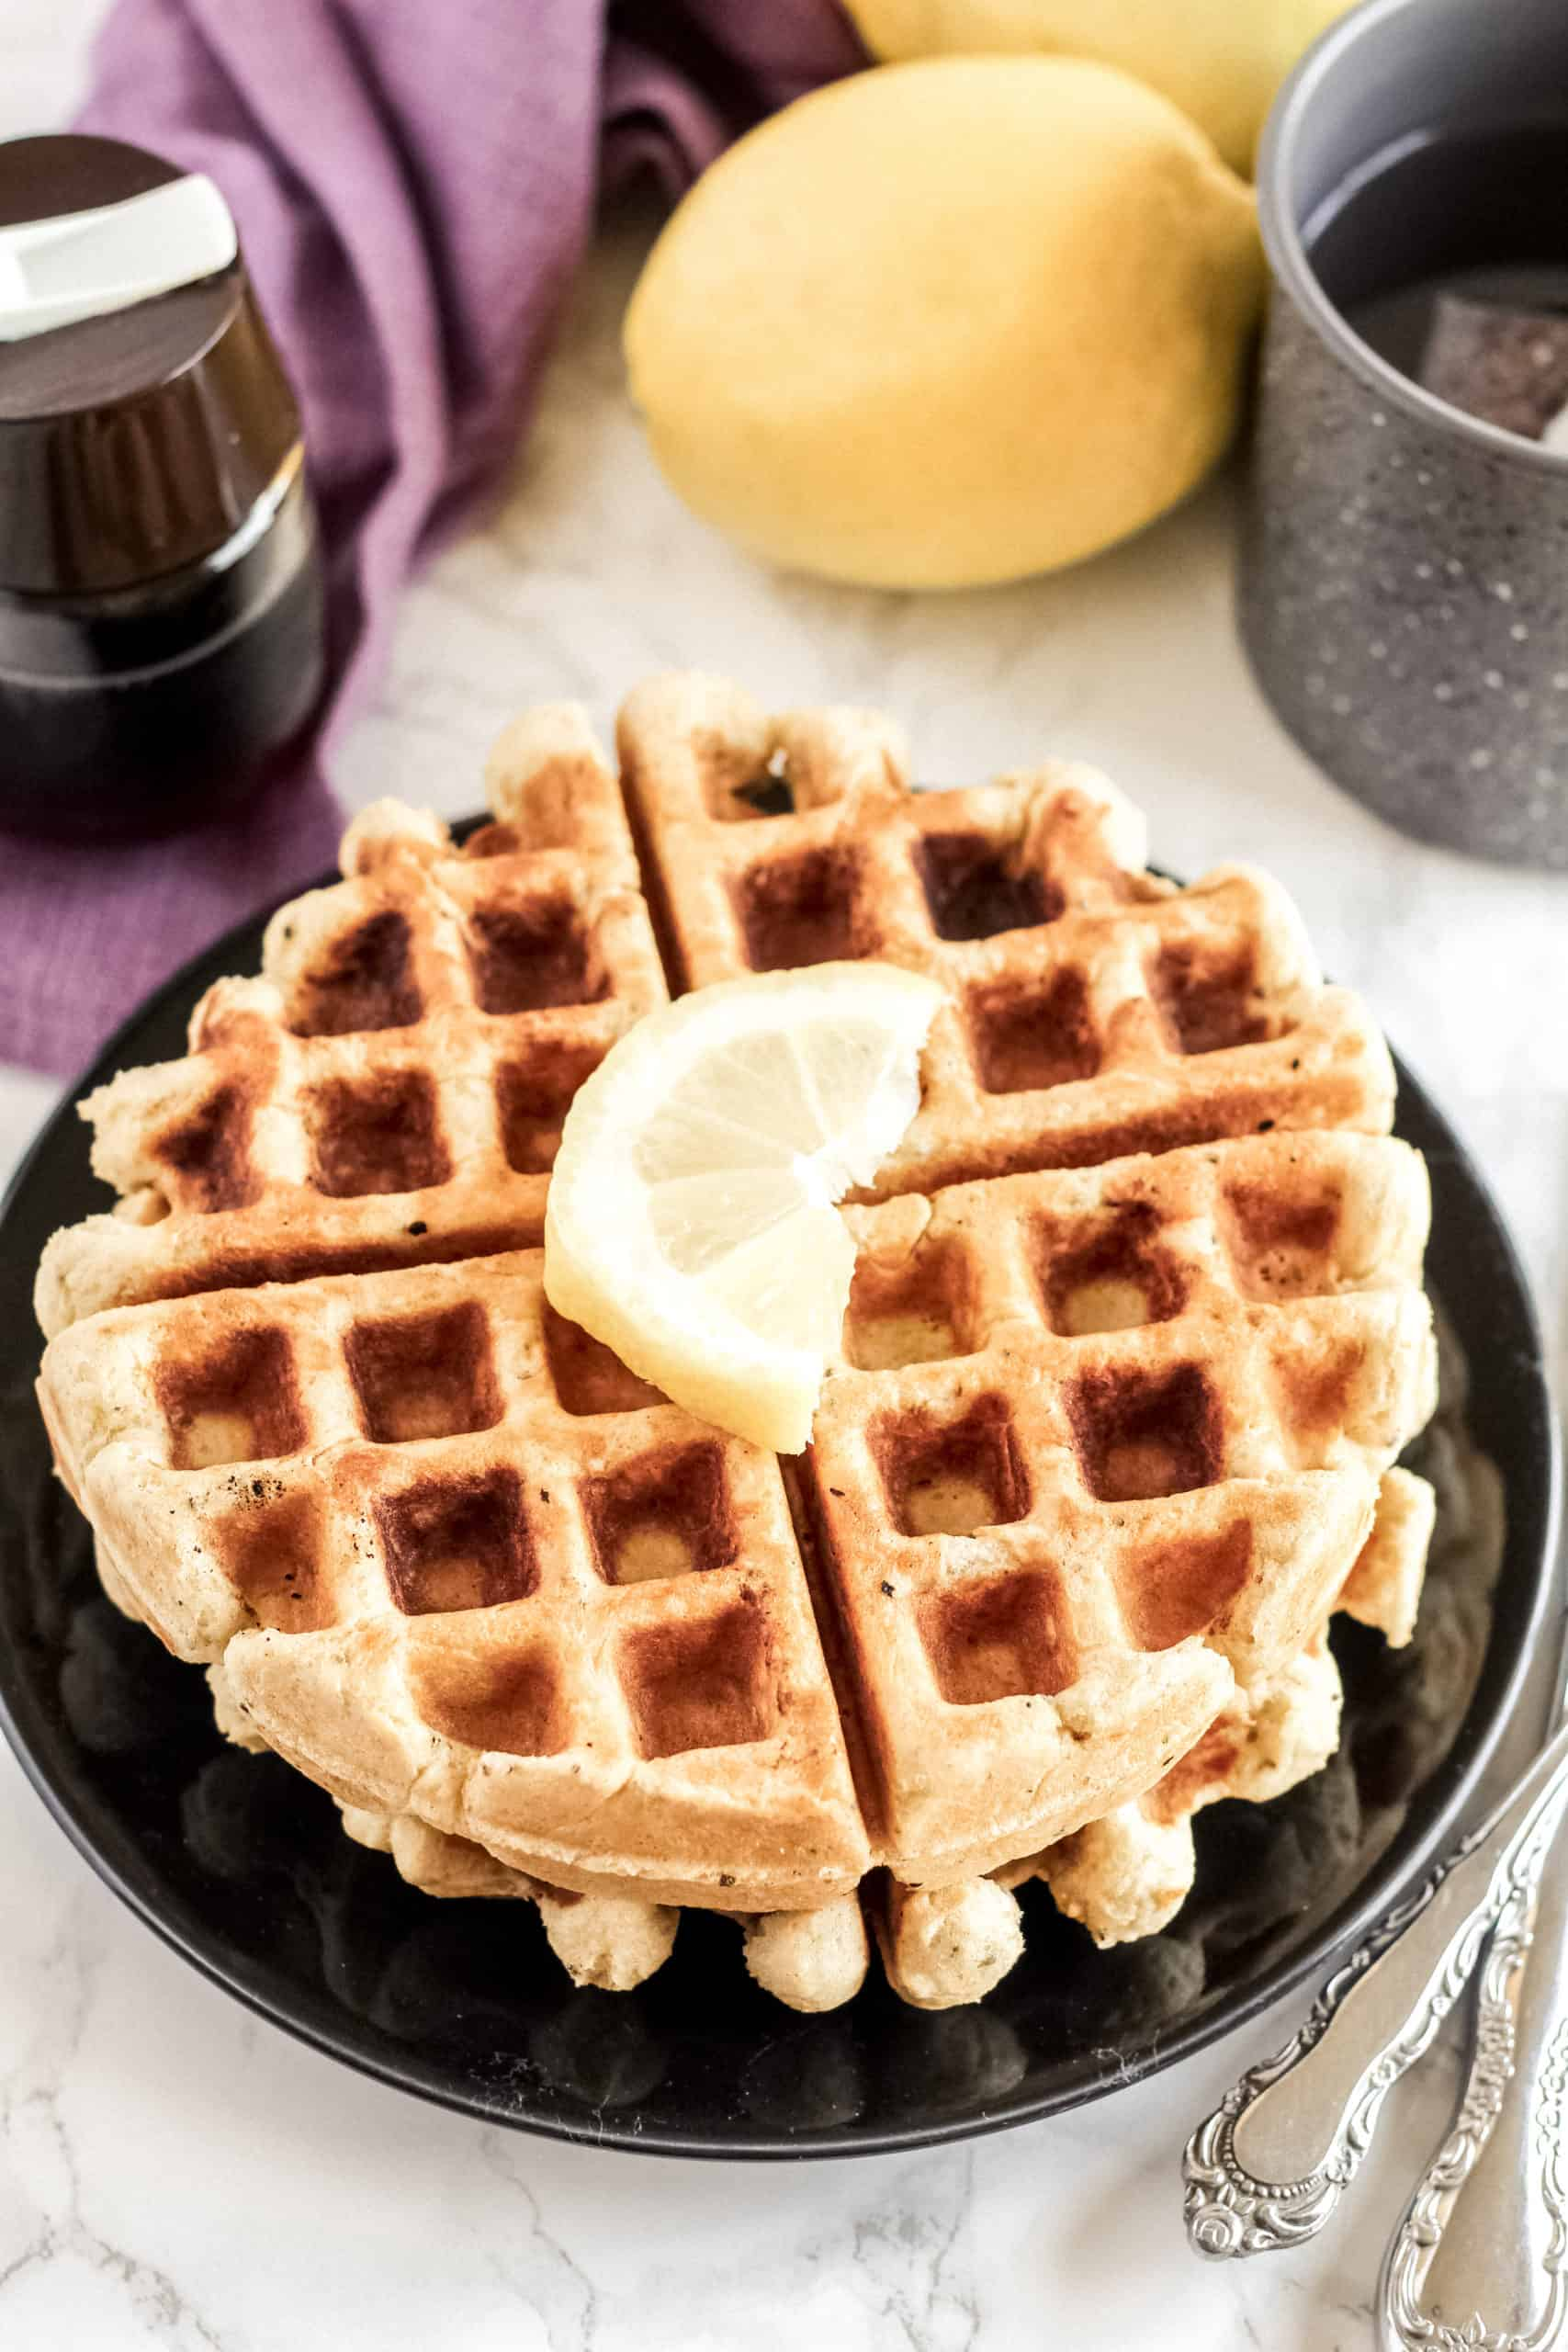 waffles on a black plate with a piece of lemon on top